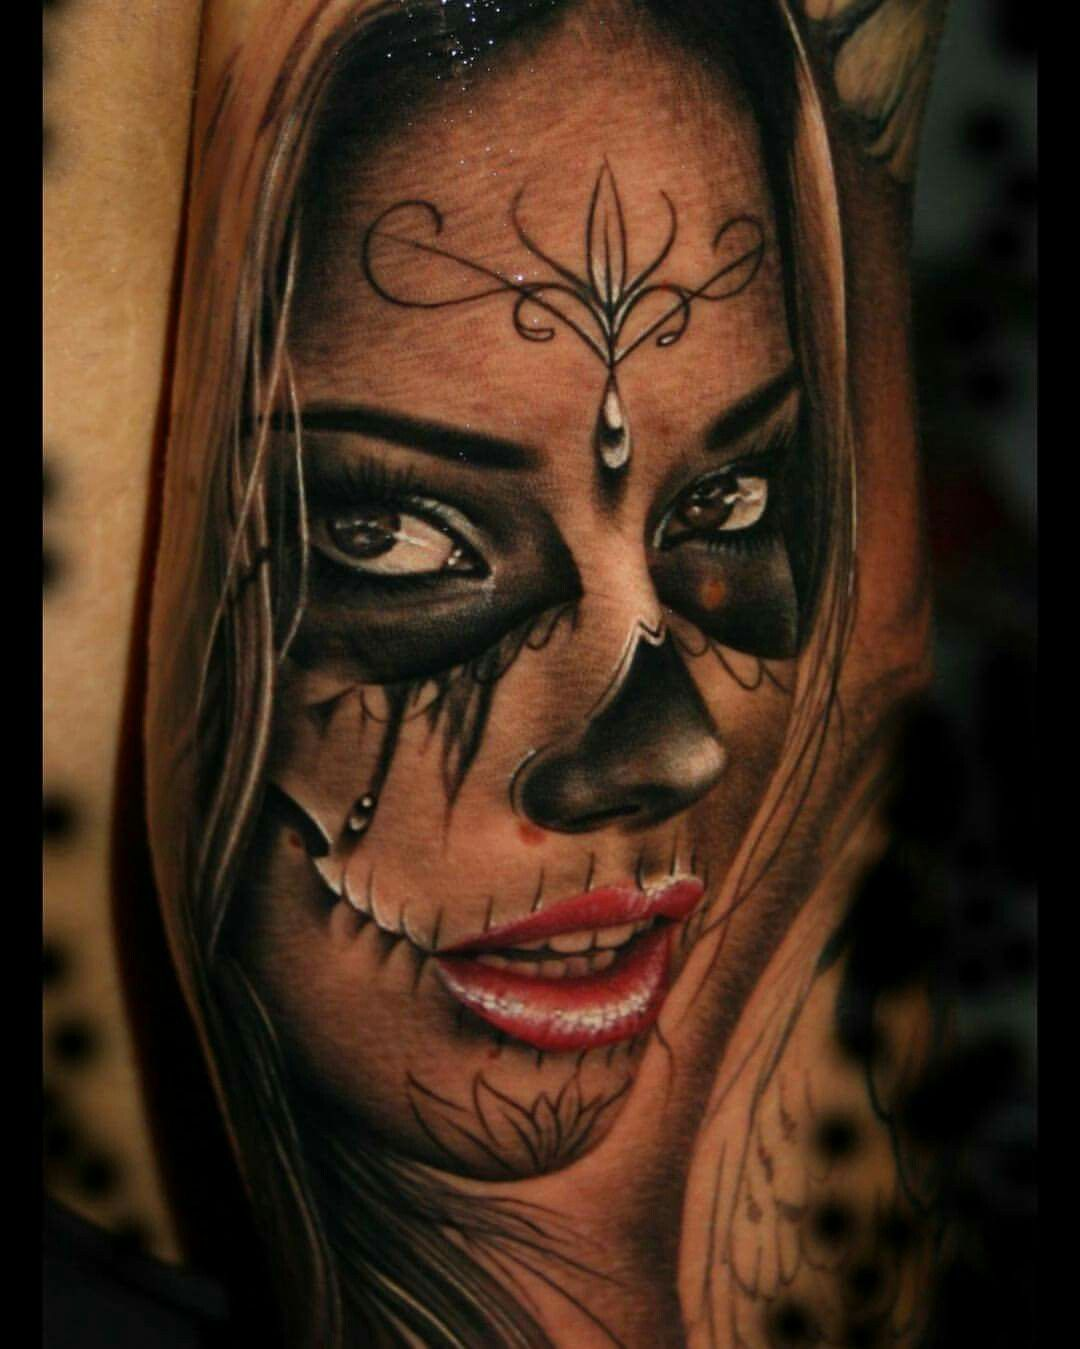 Amazing tattoo 3 pinterest tatouages tatouage santa muerte et tattoo bras complet - Santa muerte signification ...